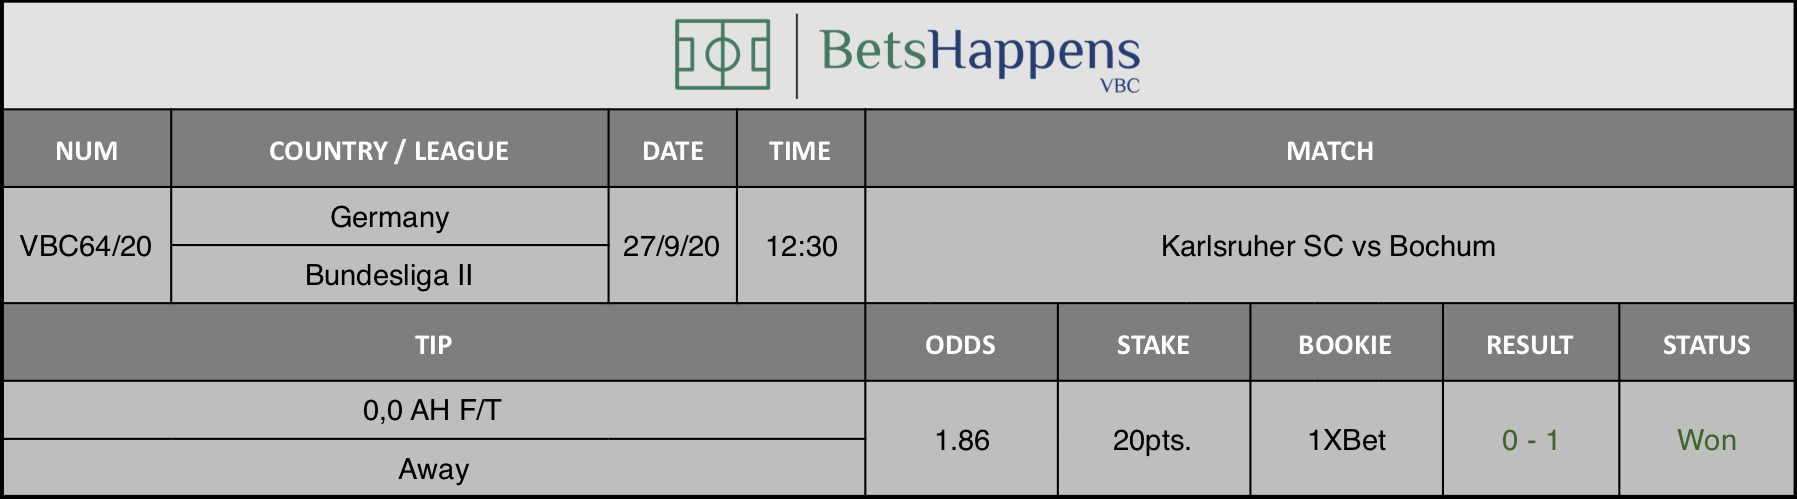 Results of our tip for the Karlsruher SC vs Bochum game where 0.0 AH F / T Away is recommended.